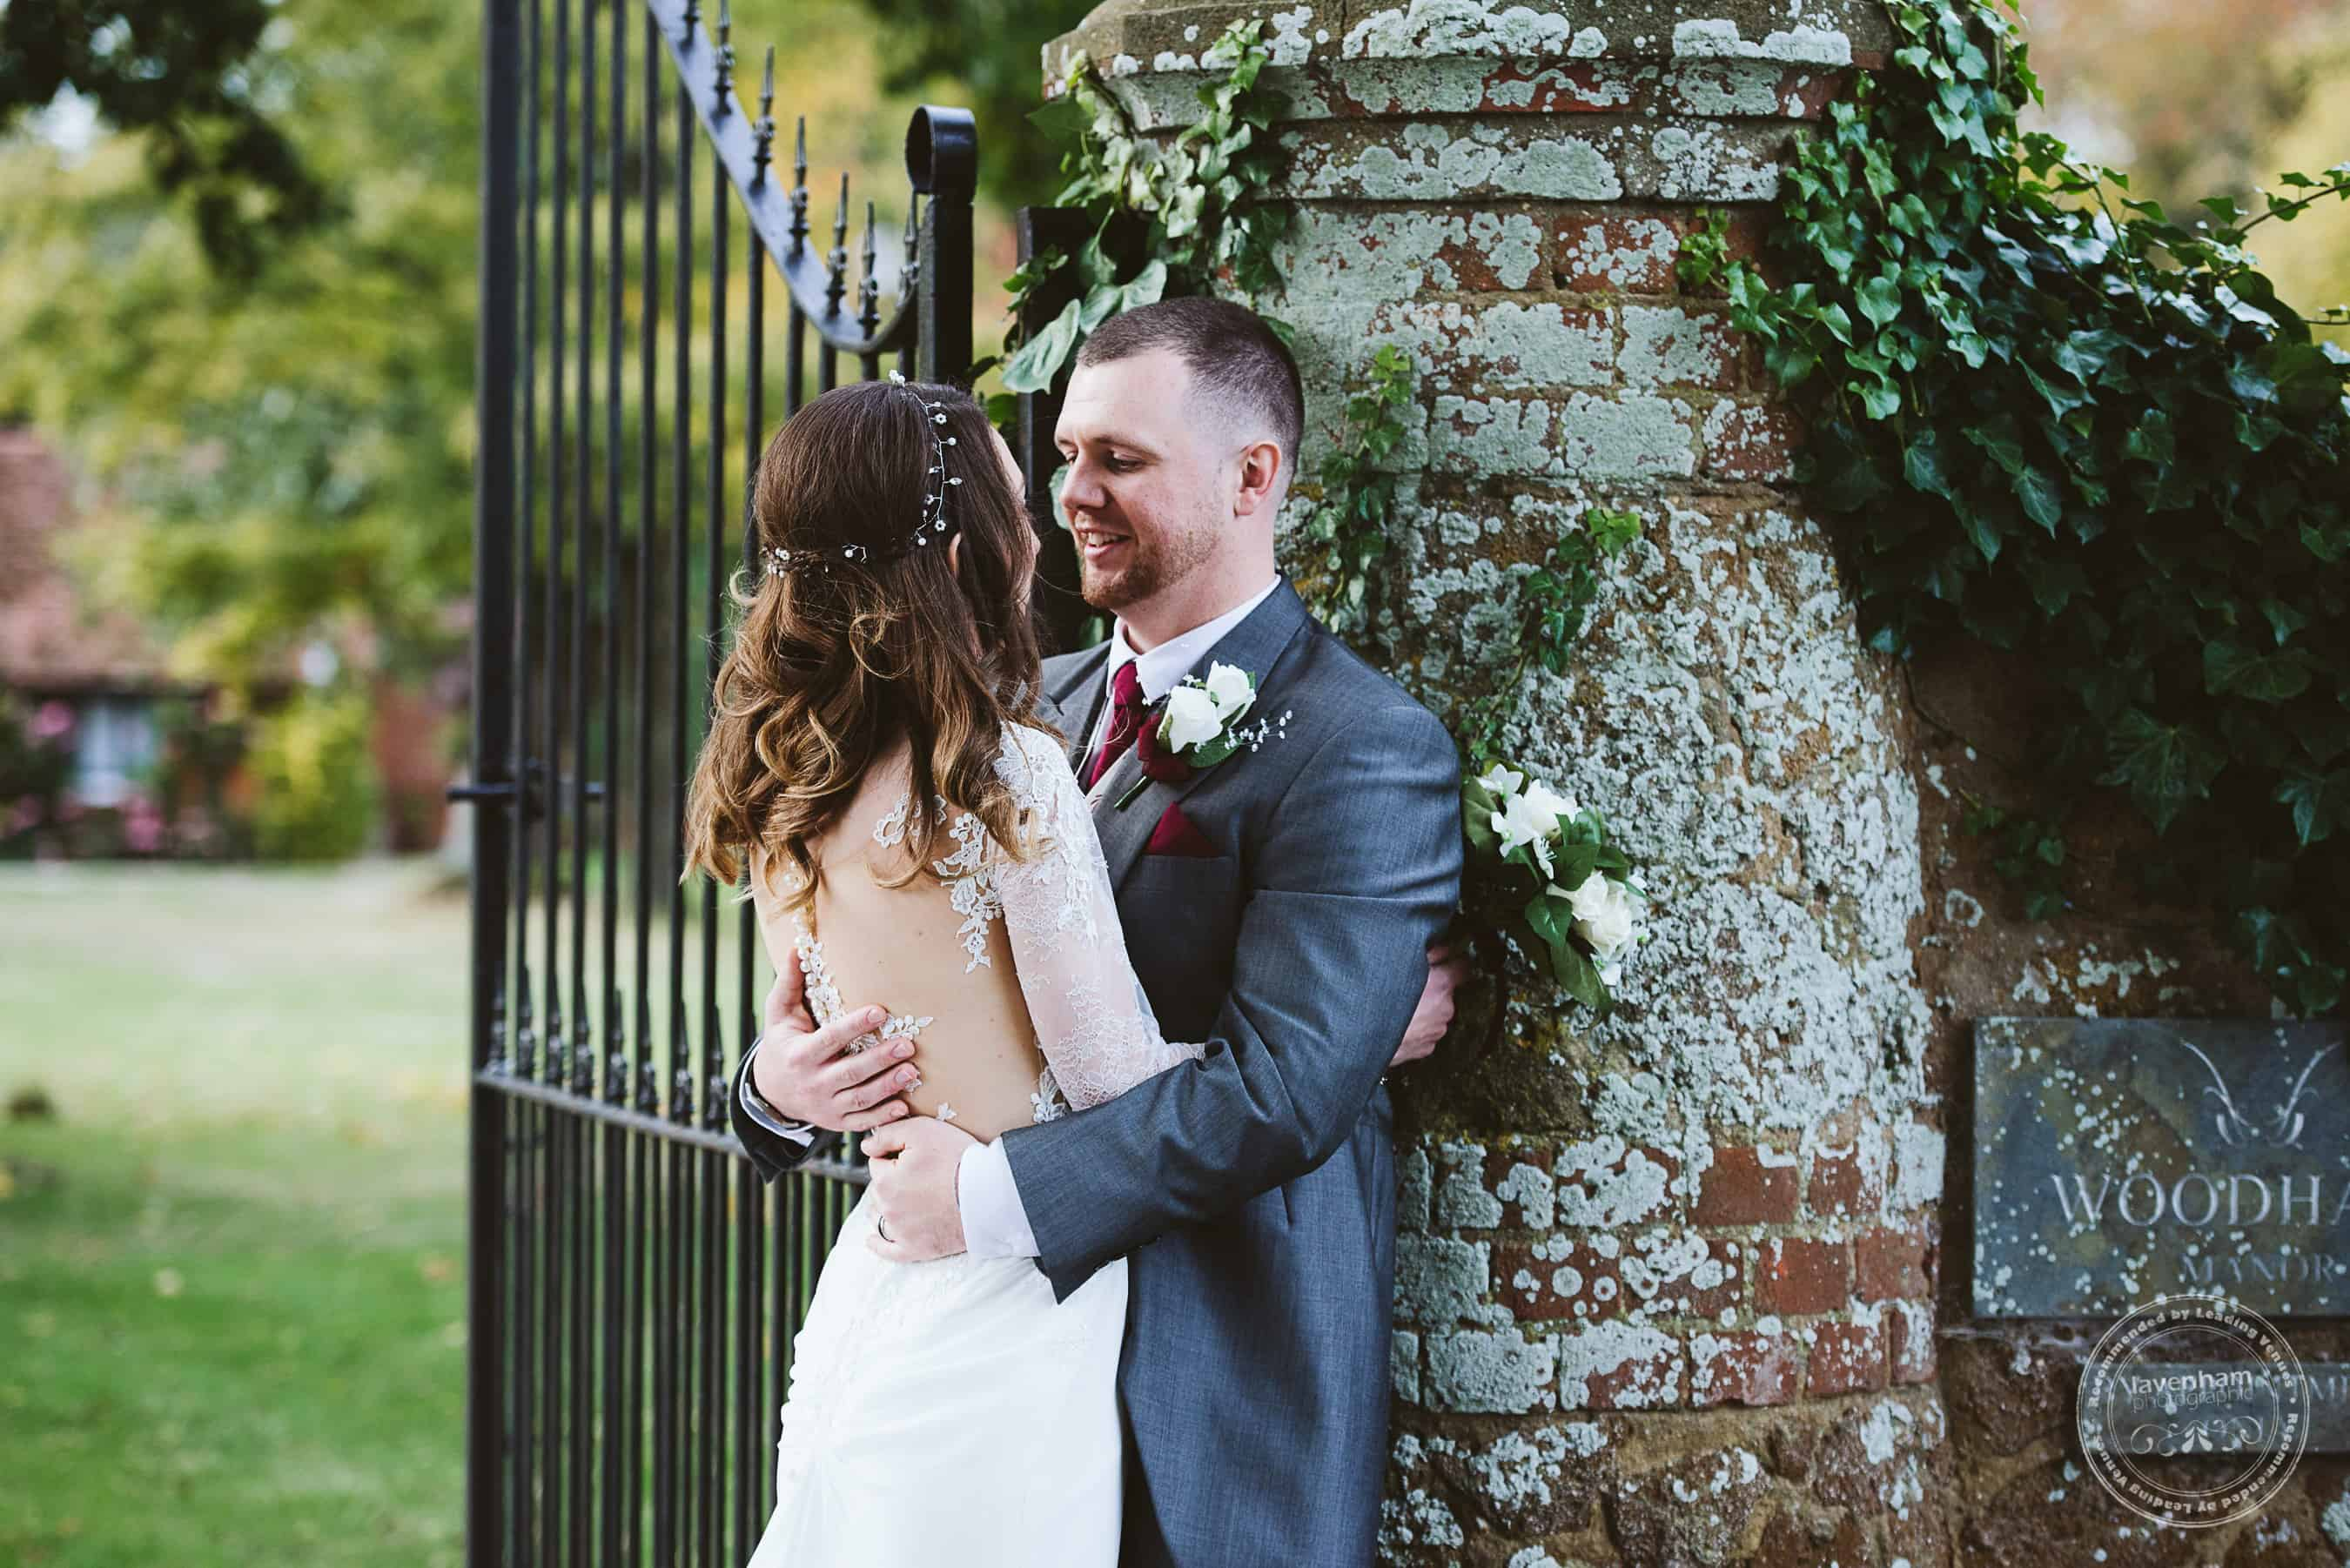 041118 Woodhall Manor Wedding Photography by Lavenham Photographic 092